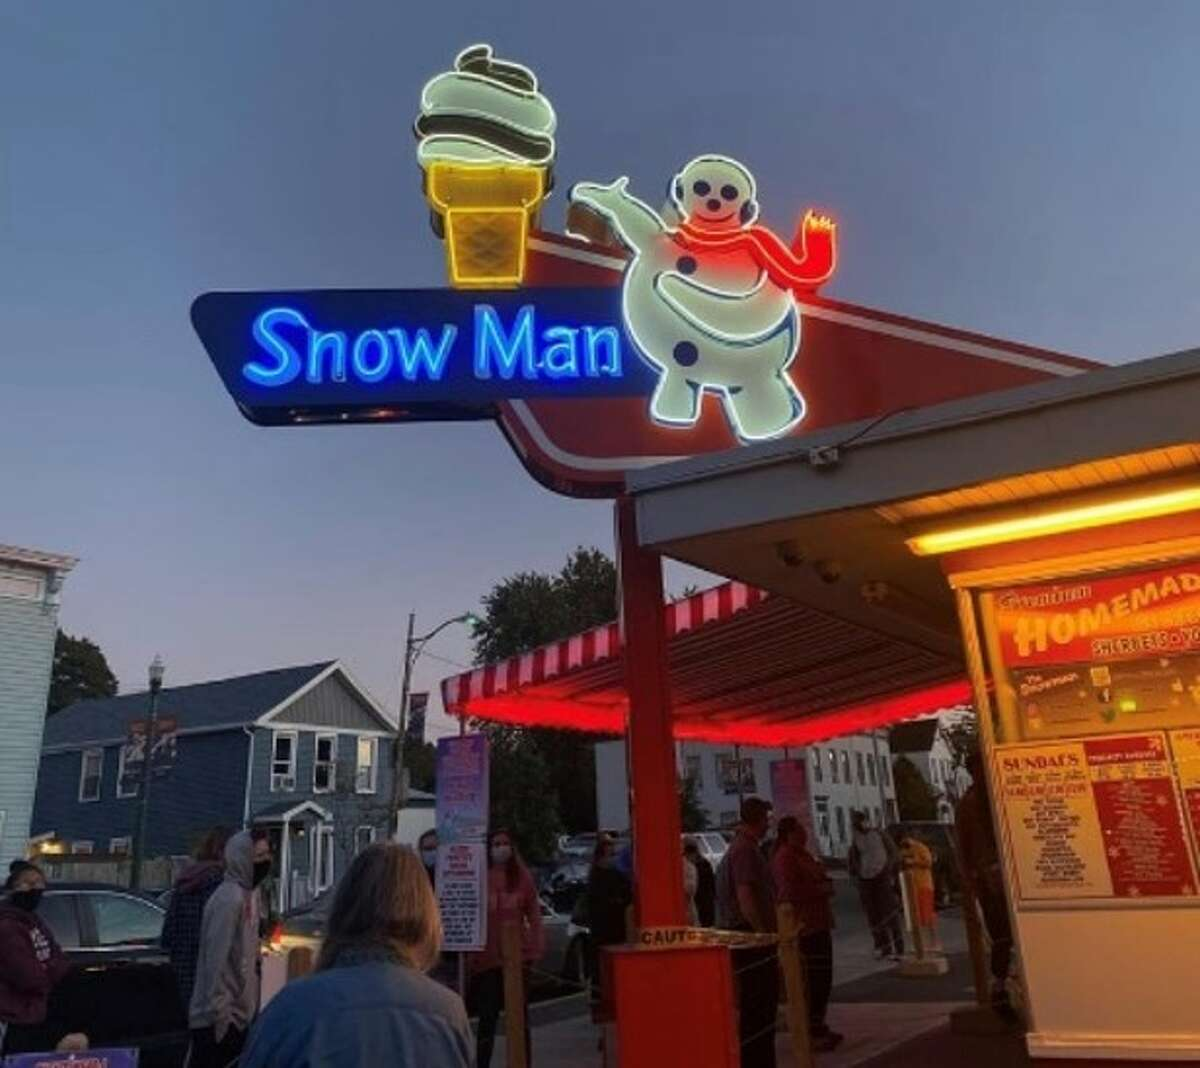 1. I began working at The Snowman in Troy at age 15 and worked there for 13 years.